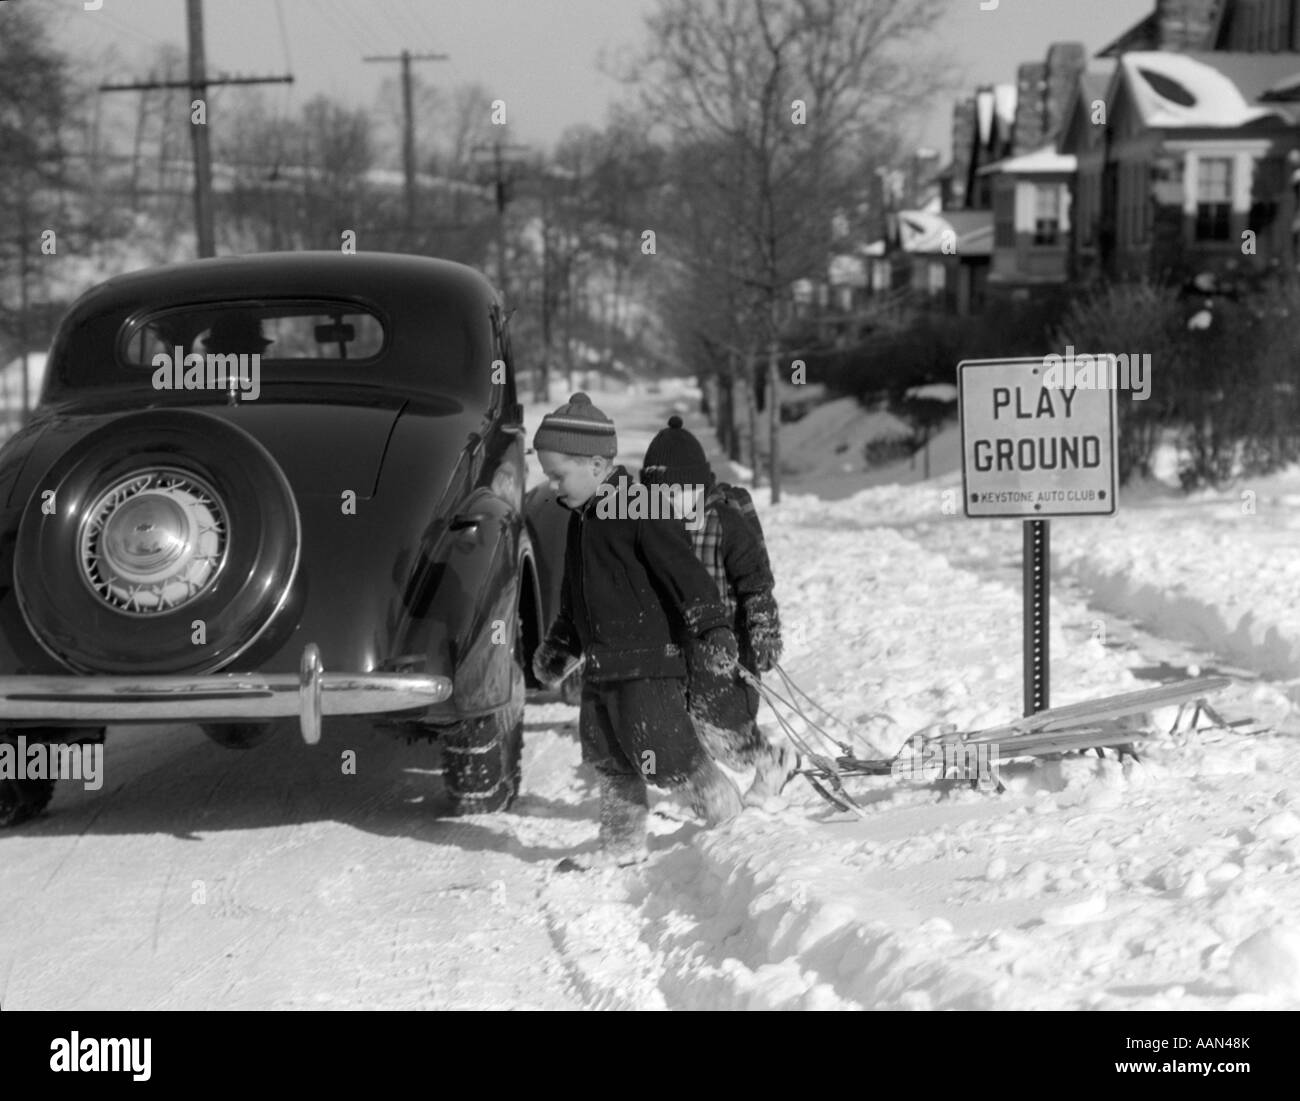 1940s TWO BOYS PULLING SLEDS ACROSS A SNOWY SUBURBAN WINTER STREET WITH PARKED CAR AND SIGN THAT SAYS PLAY GROUND - Stock Image